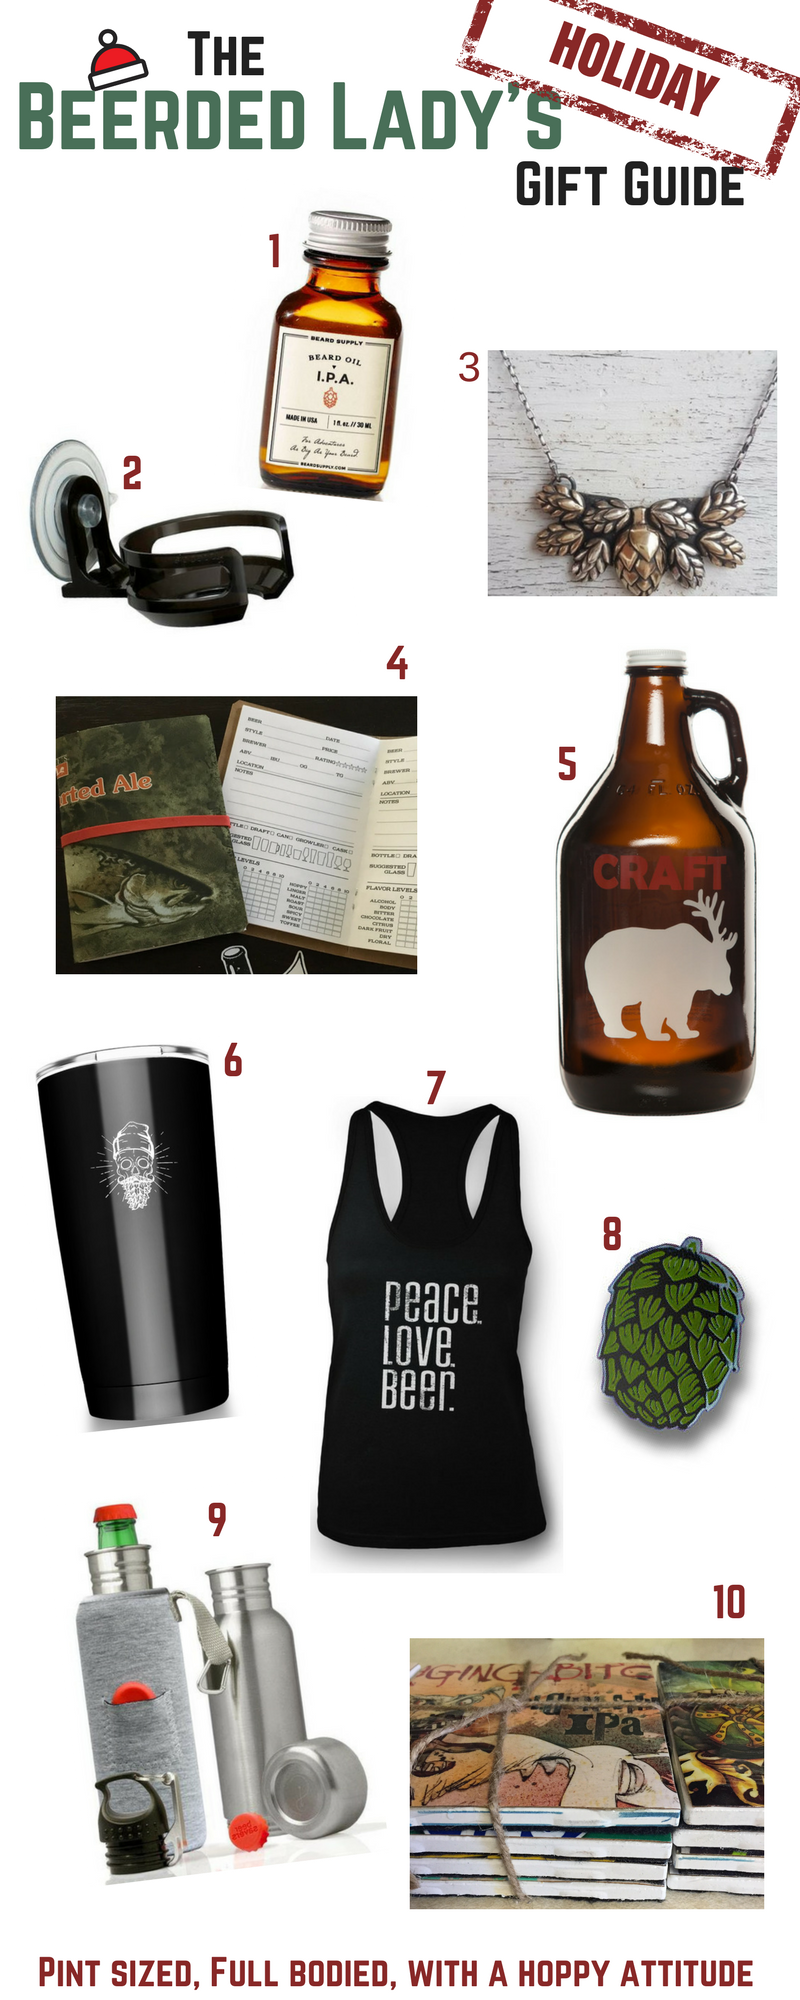 Having trouble finding a gift for your beer lover? Then this is the ...